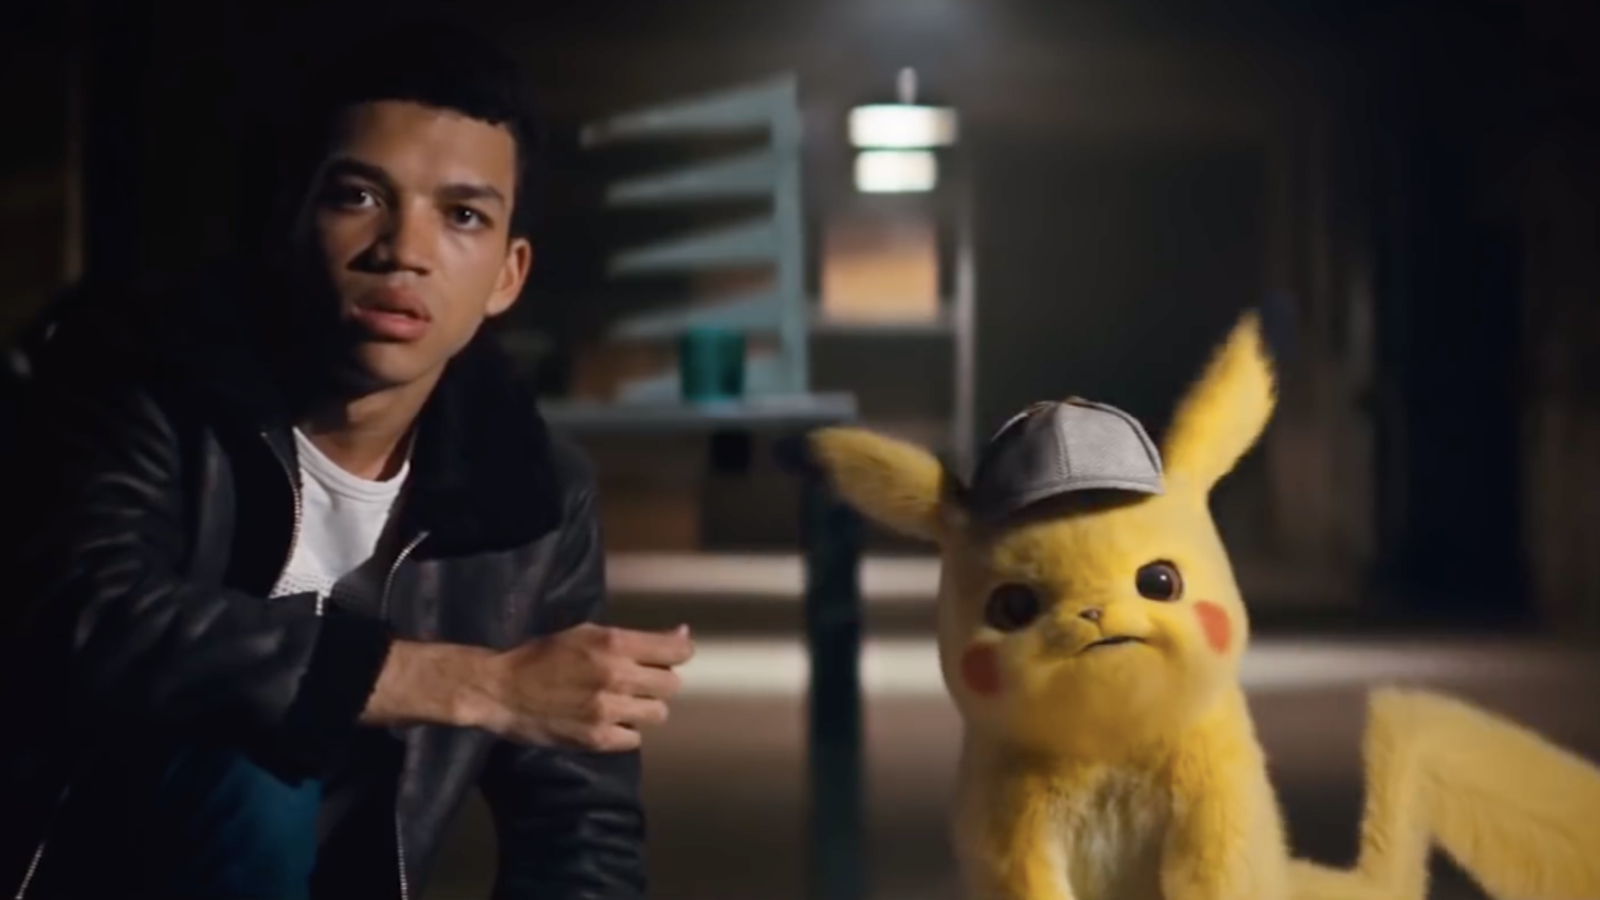 Ryan Reynolds Tweets Link to 'Pokémon Detective Pikachu' Full Movie on YouTube